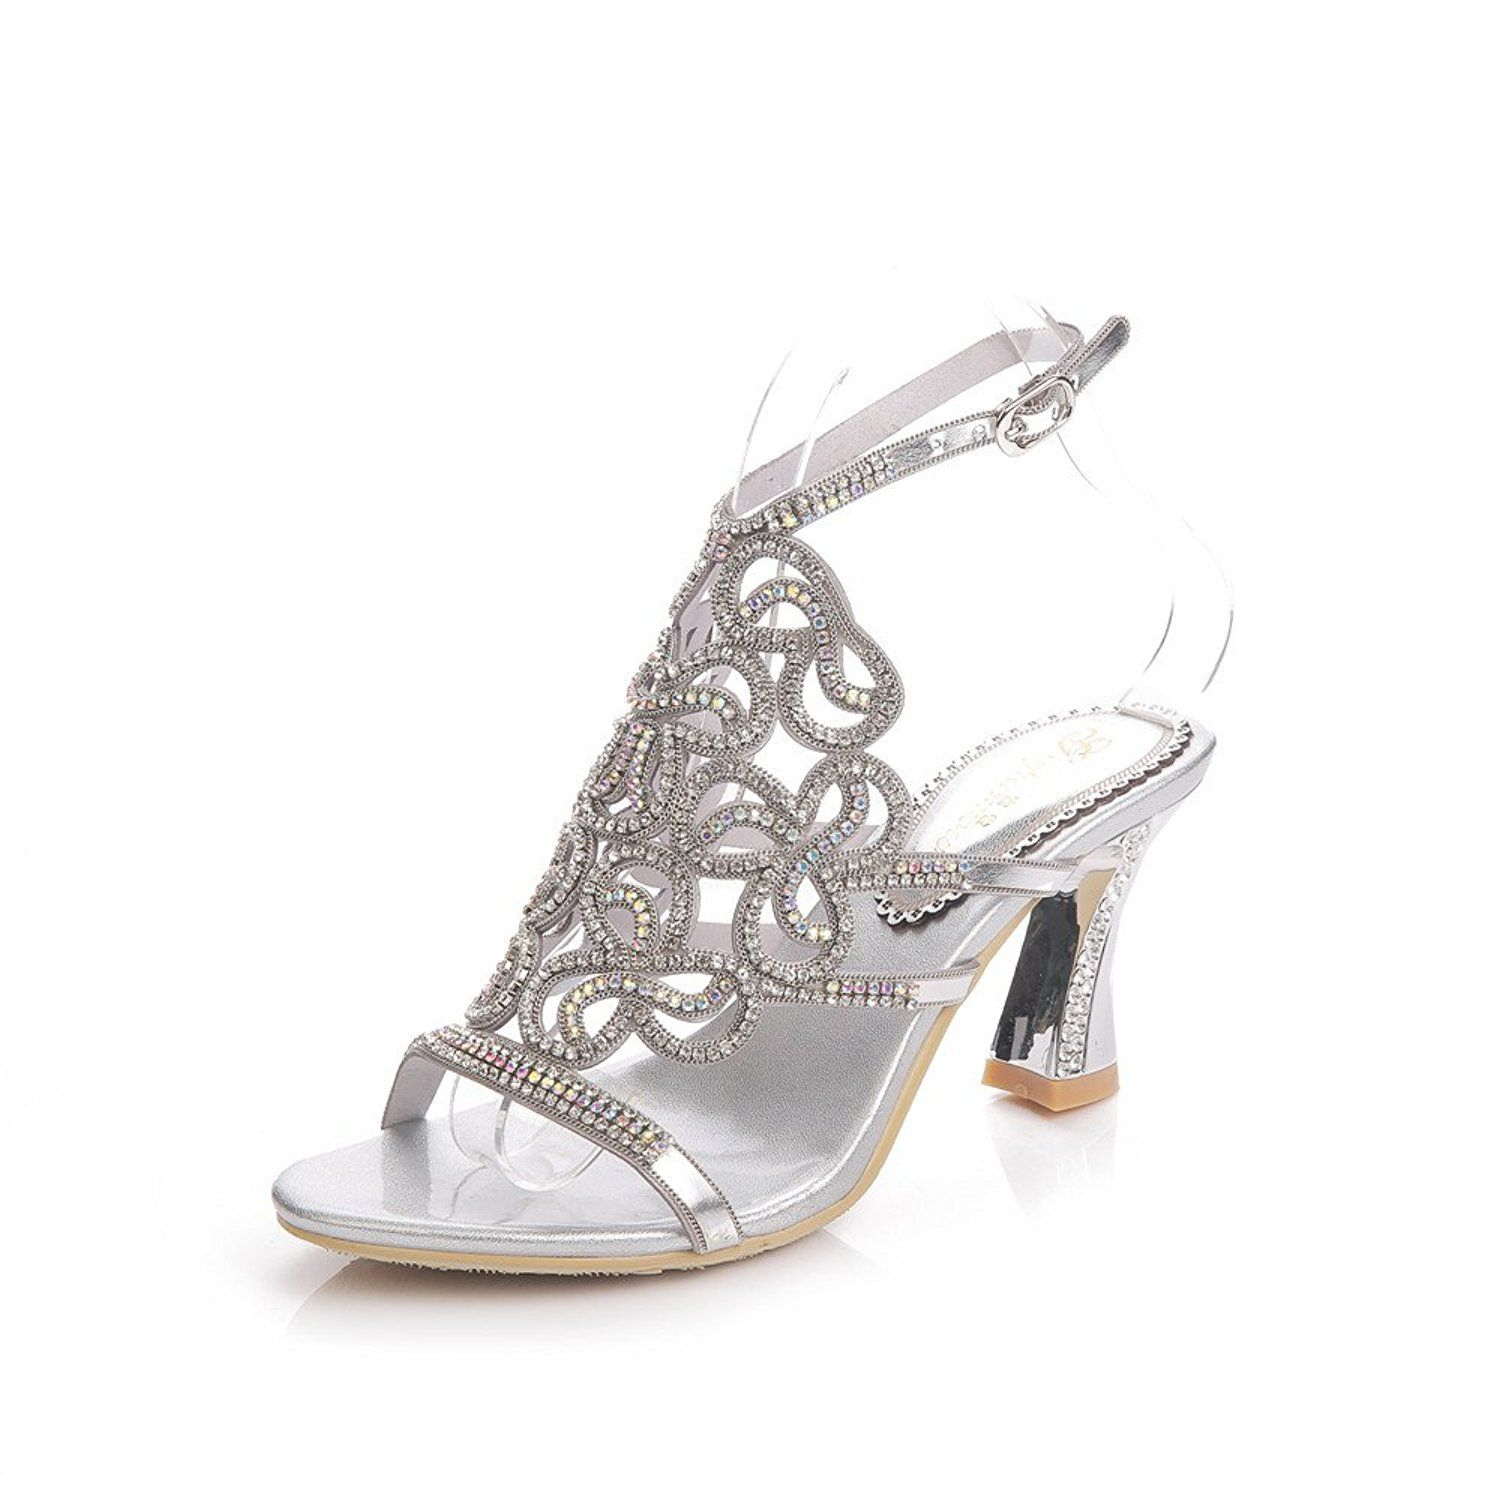 ed50226a04c7 Unicorelle Women s Bohemian Crystal Rhinestone with Adjustable Sling Peep  Toe Open Back Bridal Sandals     Read more at the image link.